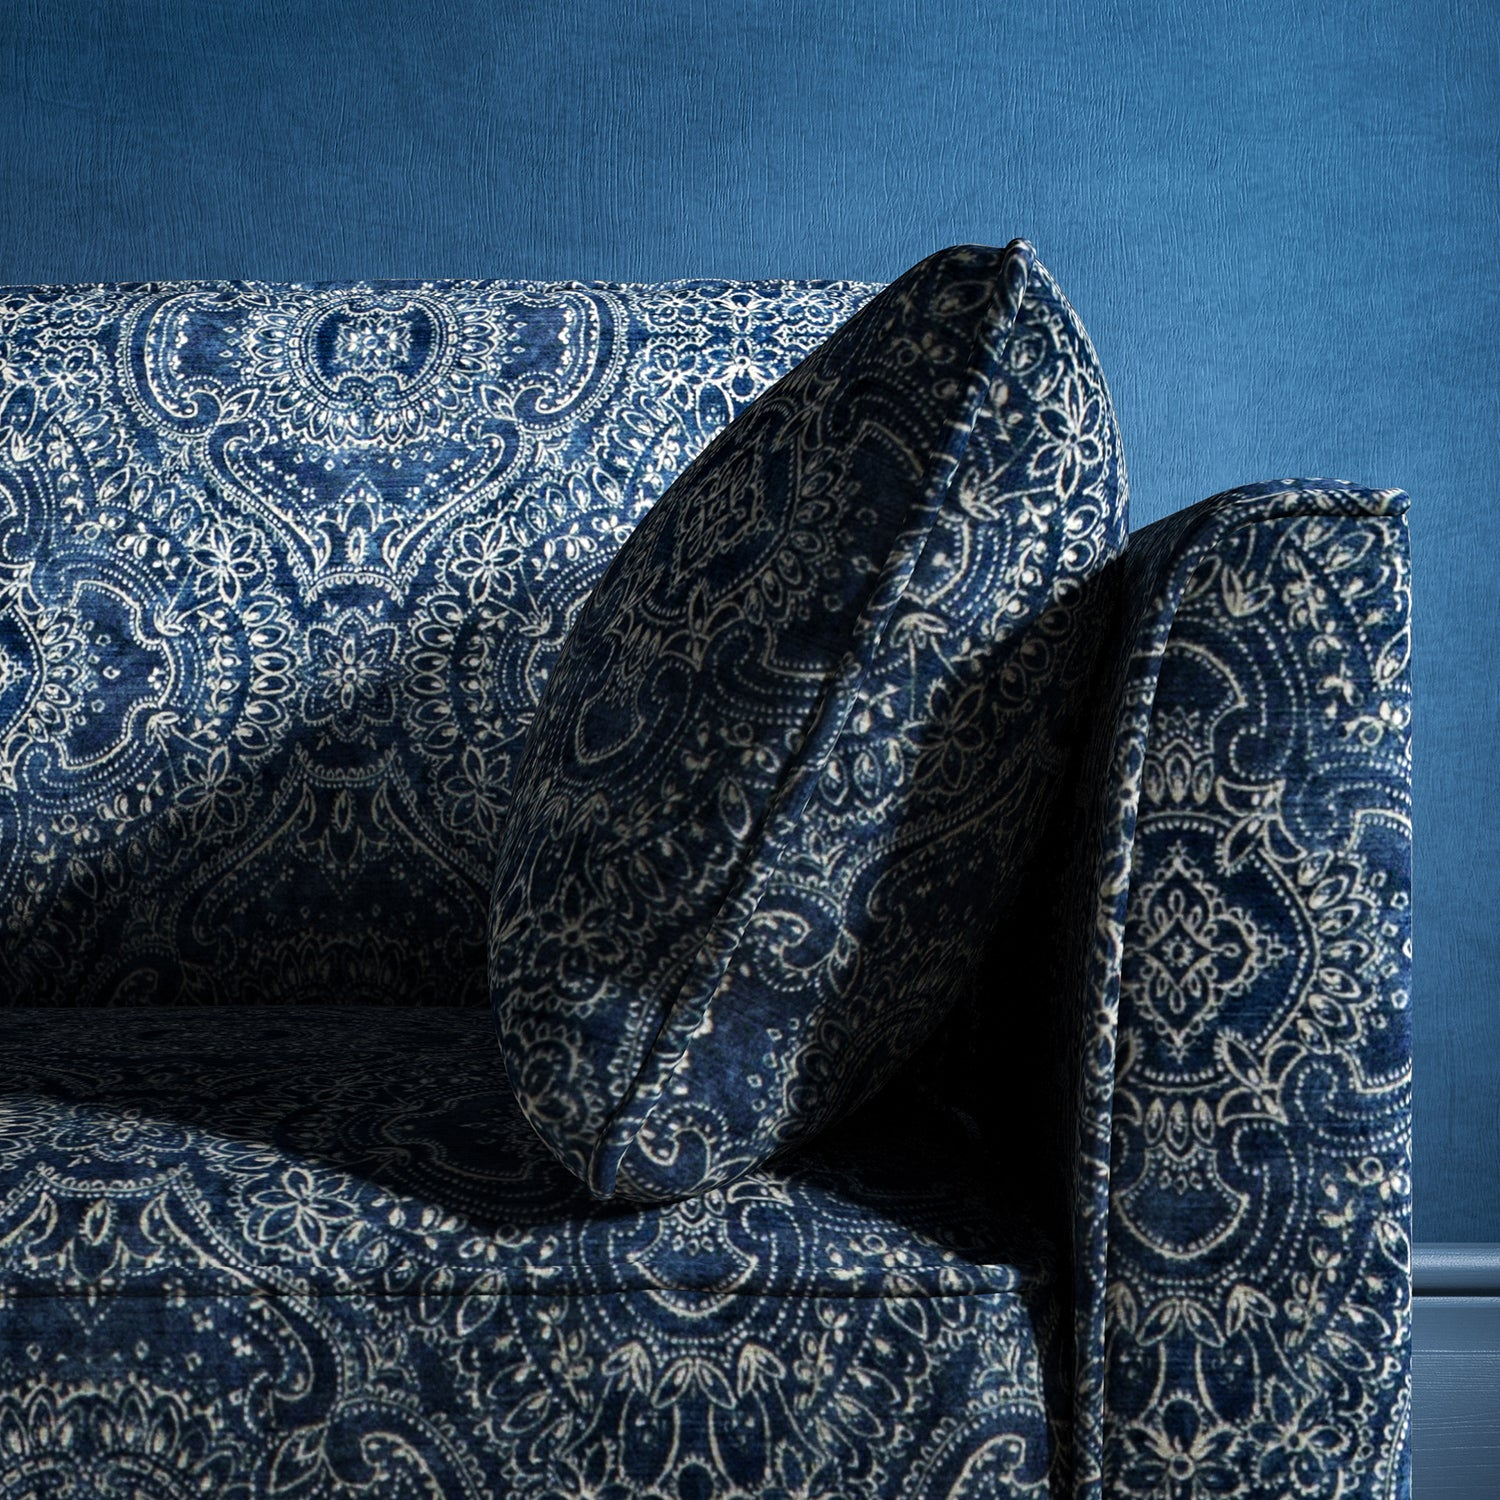 Sofa upholstered in a indigo blue upholstery fabric with intricate jewel like design